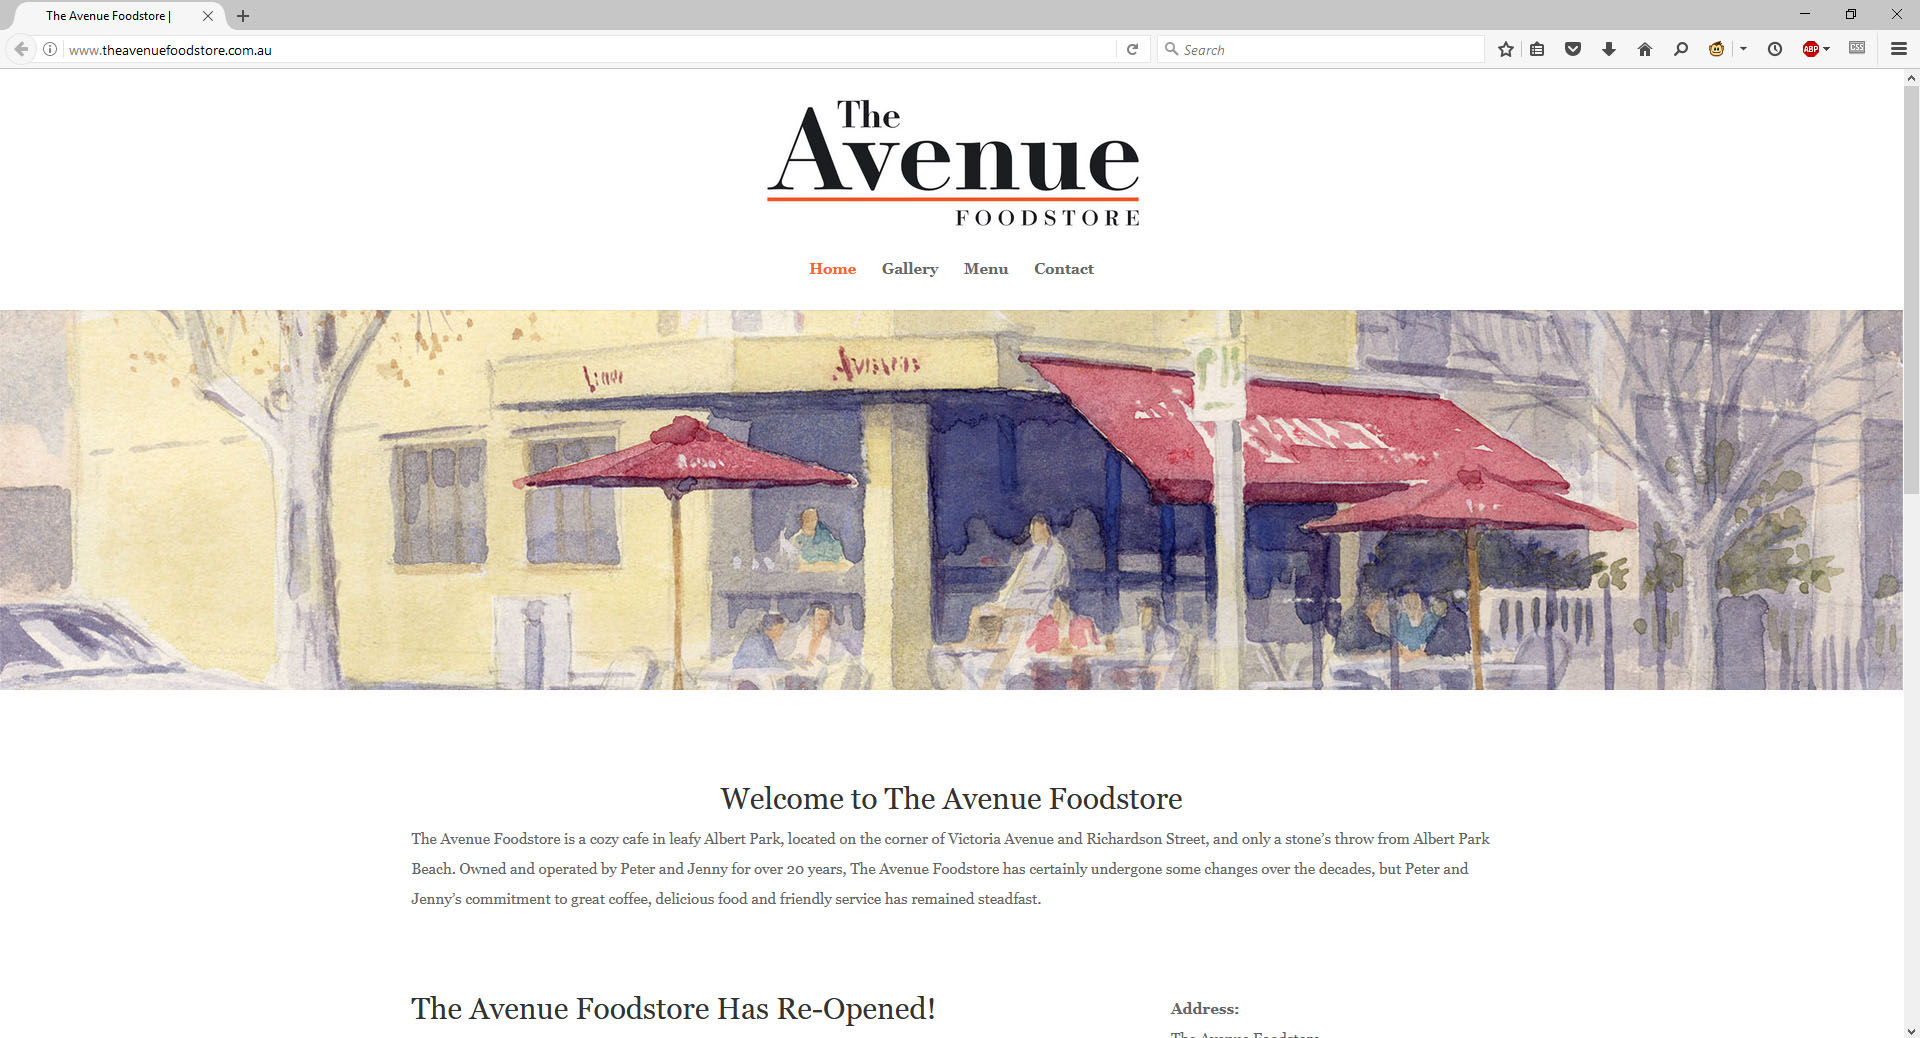 theavenuefoodstore.com.au website